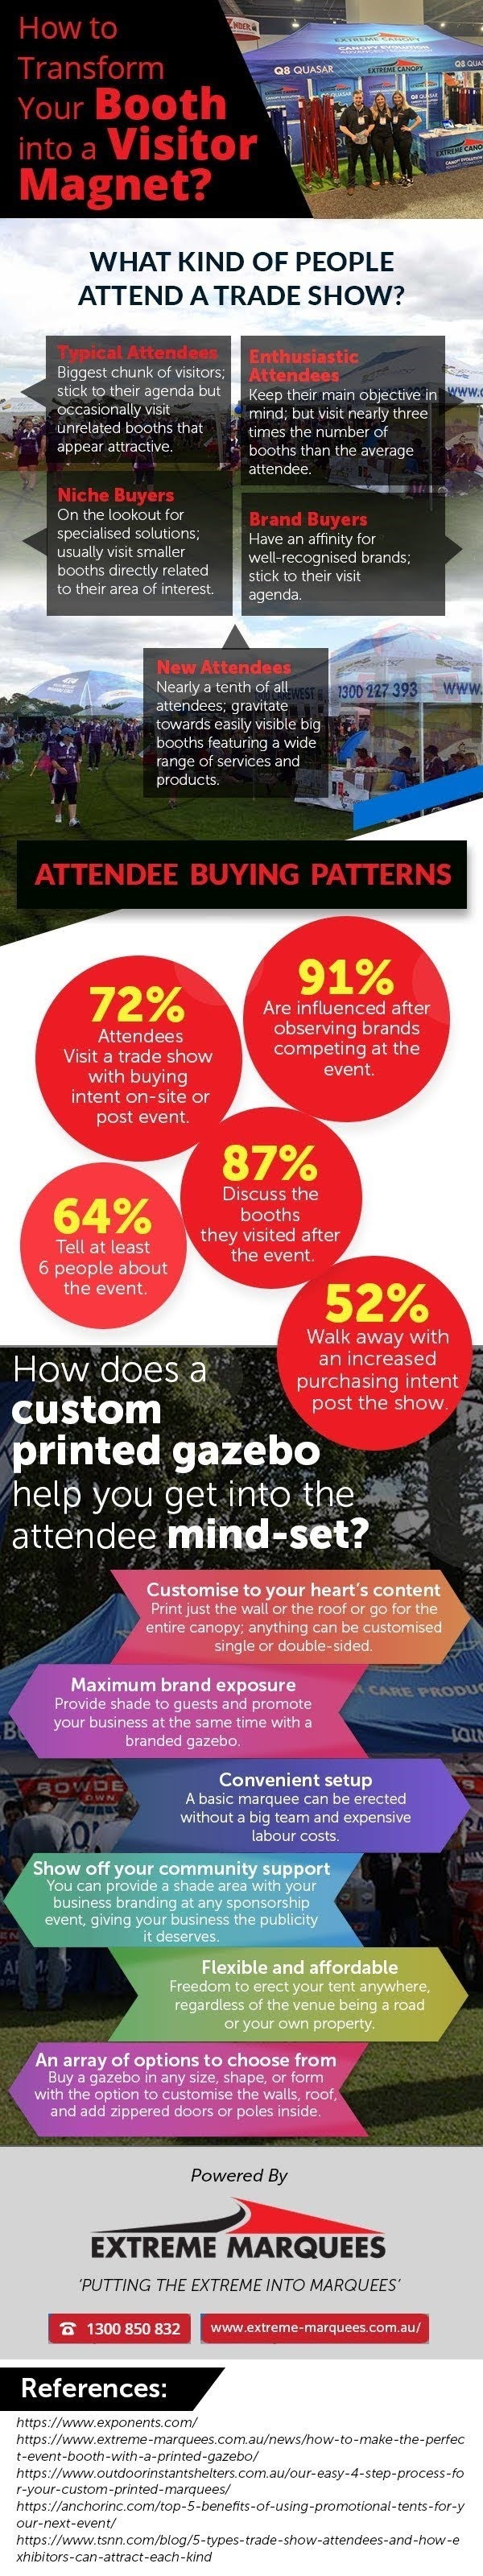 How to Transform Your Booth Into a Visitor Magnet? #infographic